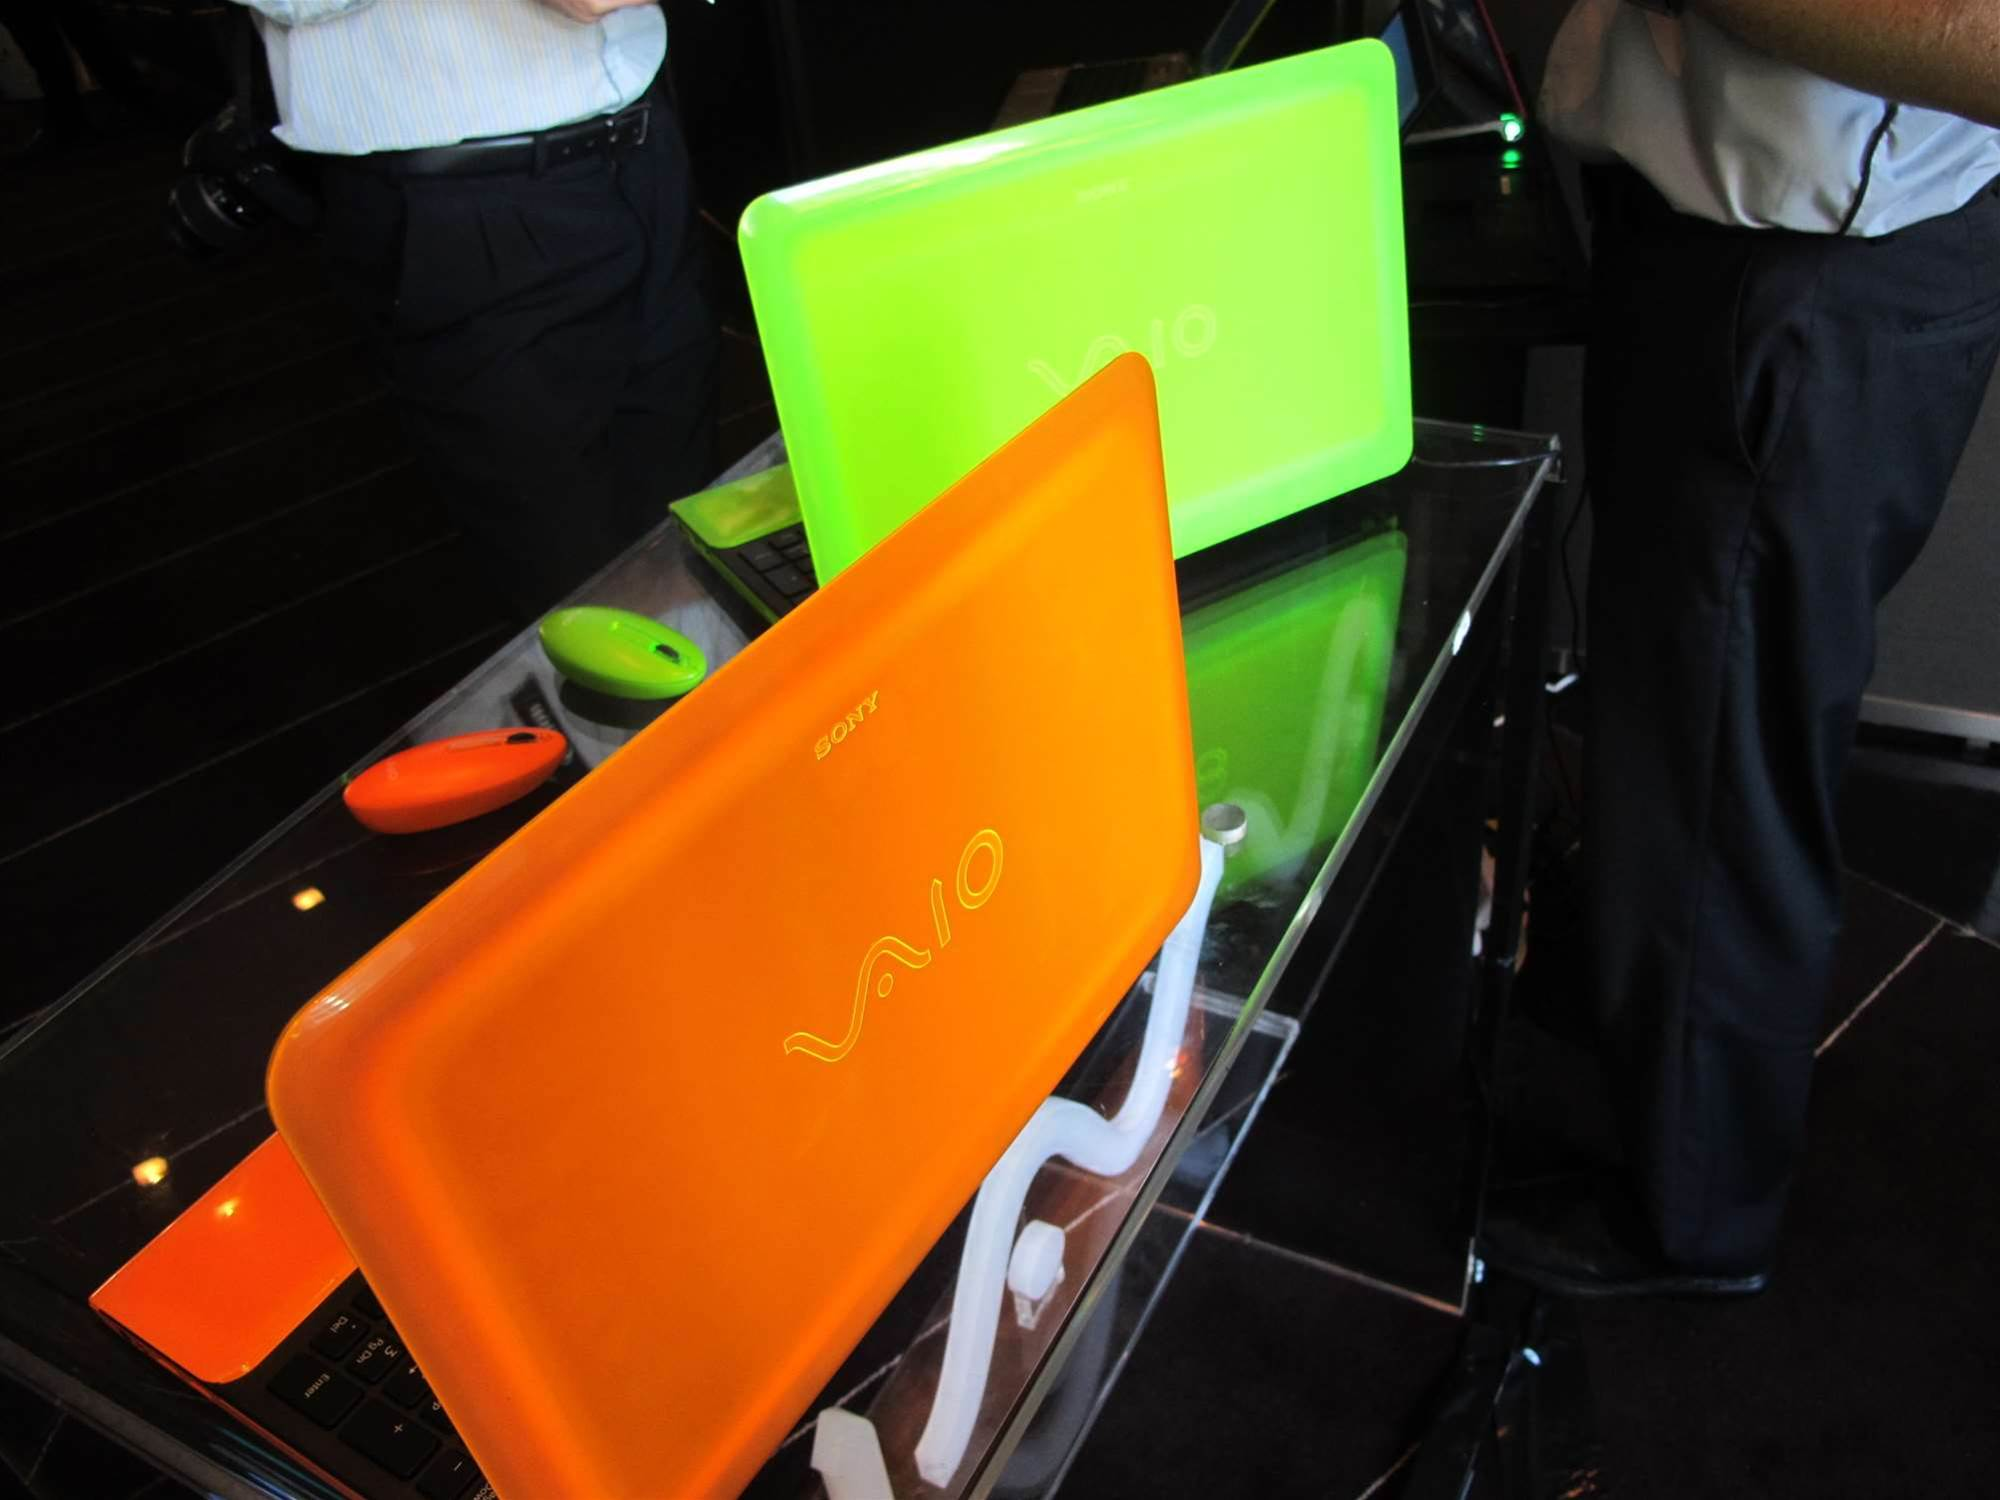 In Pictures: Sony Vaio C 'glow-in-the-dark' laptops